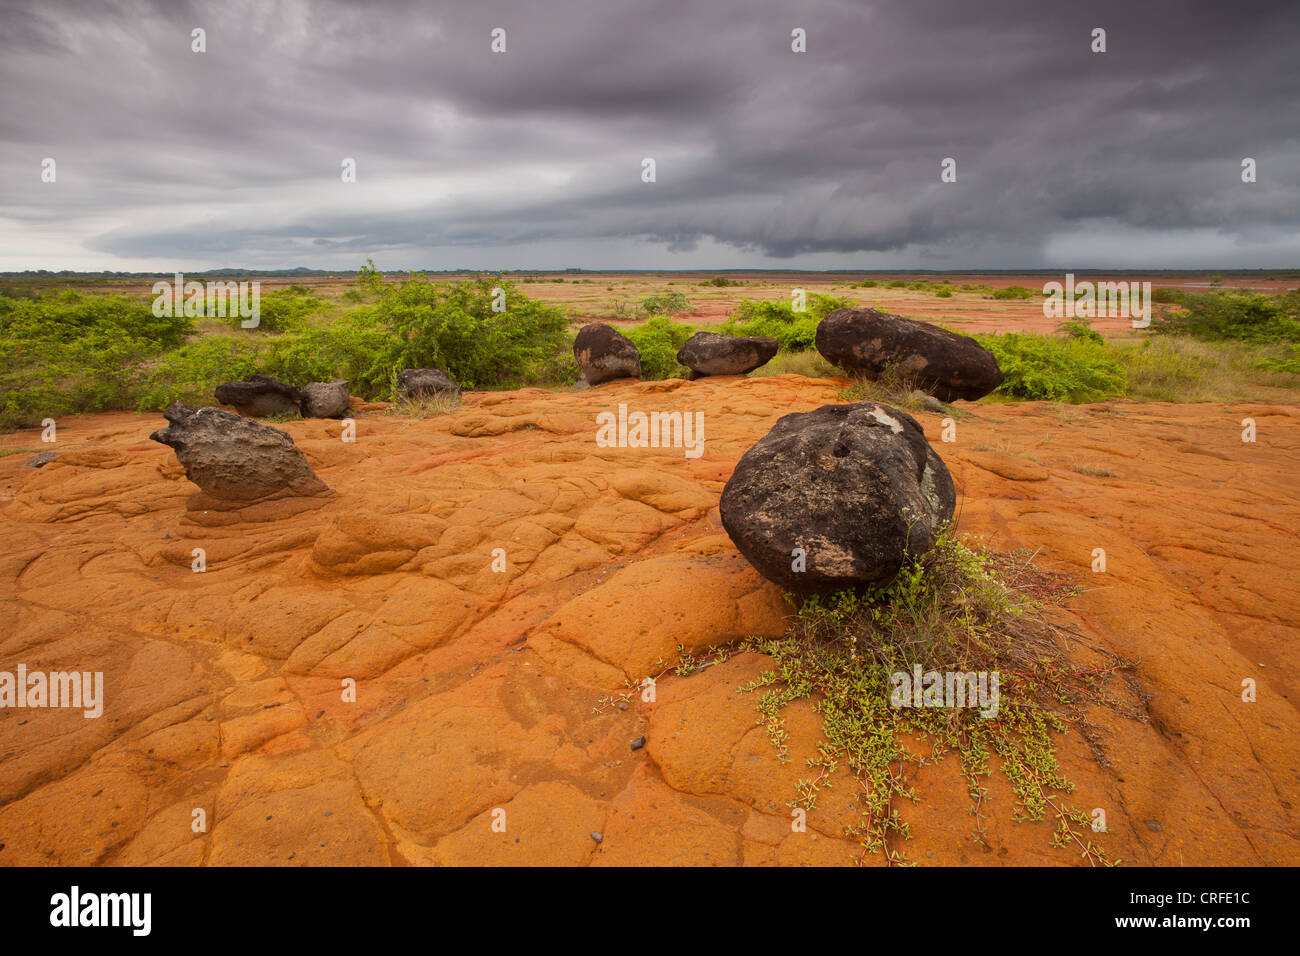 Volcanic rocks and formations in Sarigua national park (Desert), Herrera province, Republic of Panama. - Stock Image